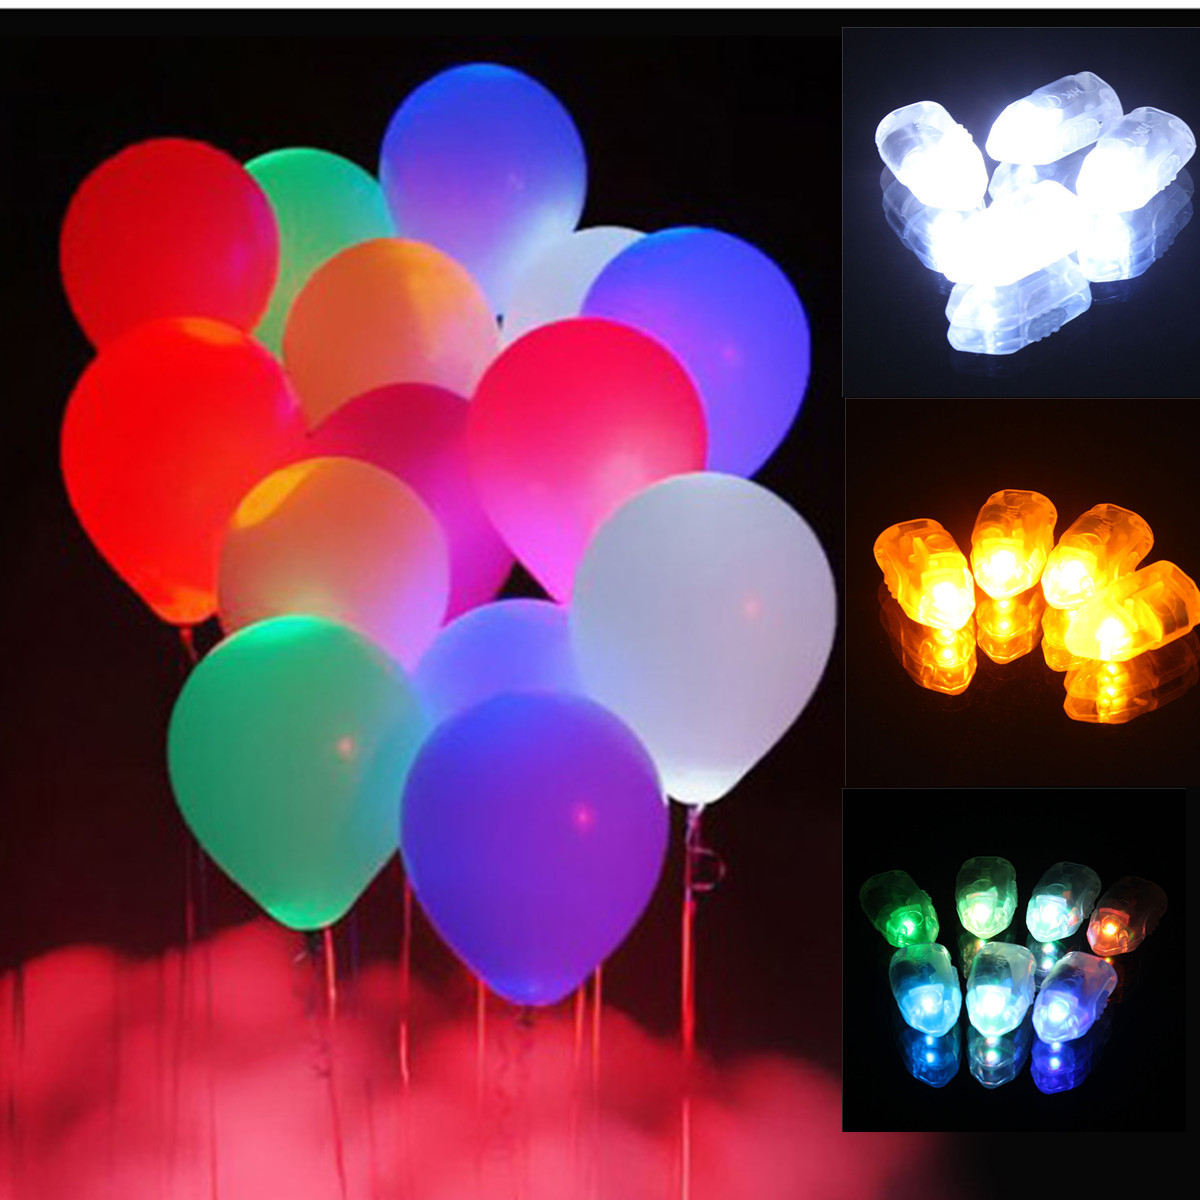 10Pcs LED Balloon Lights Lamps Paper Lanterns Lamp Home Wedding Party Decorative Lights samia m el dieb mohamed m metwally and alaa m abd el fattah the changes in uht milk properties during storage